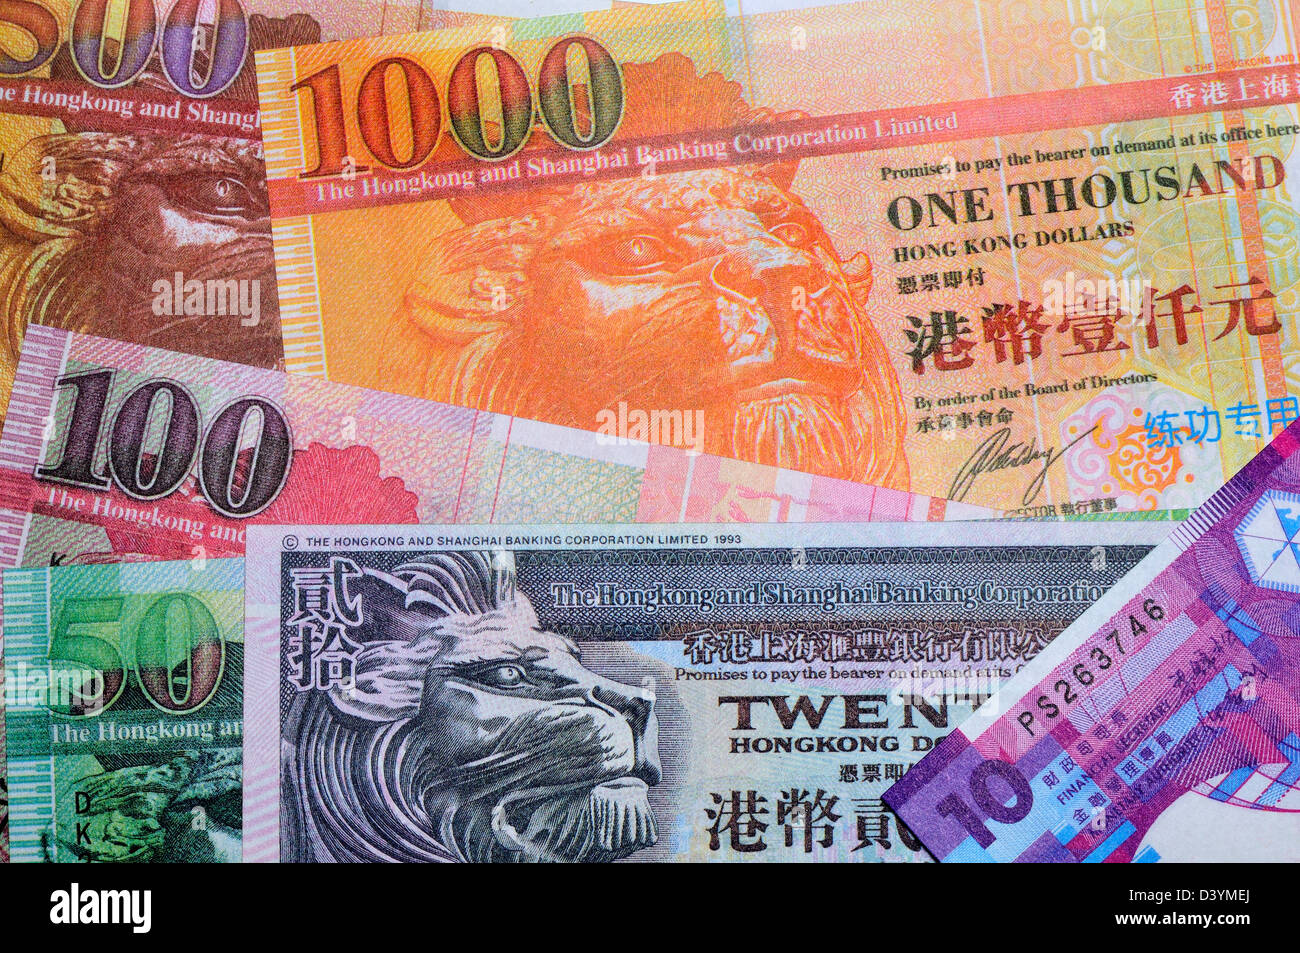 Hong Kong banknotes, from 10 to 1000 dollars - Stock Image